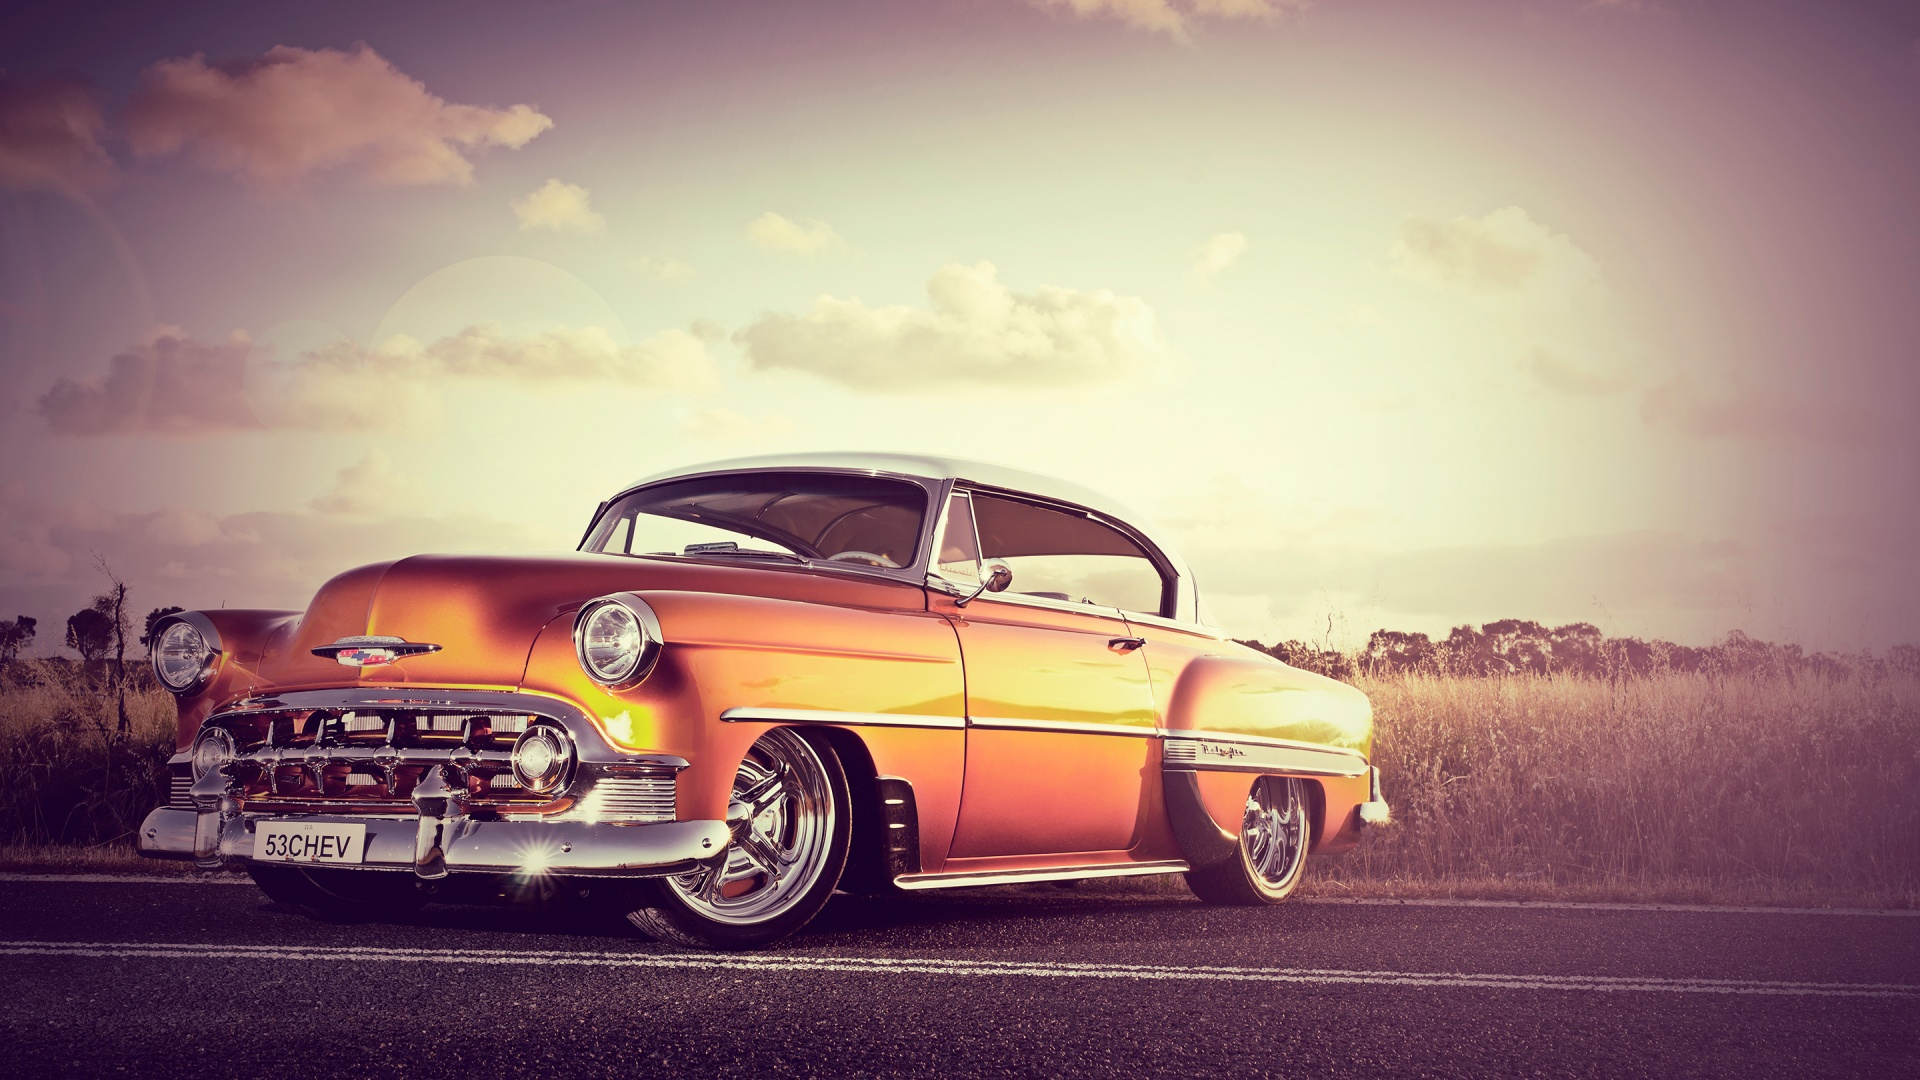 chevrolet classic images #11